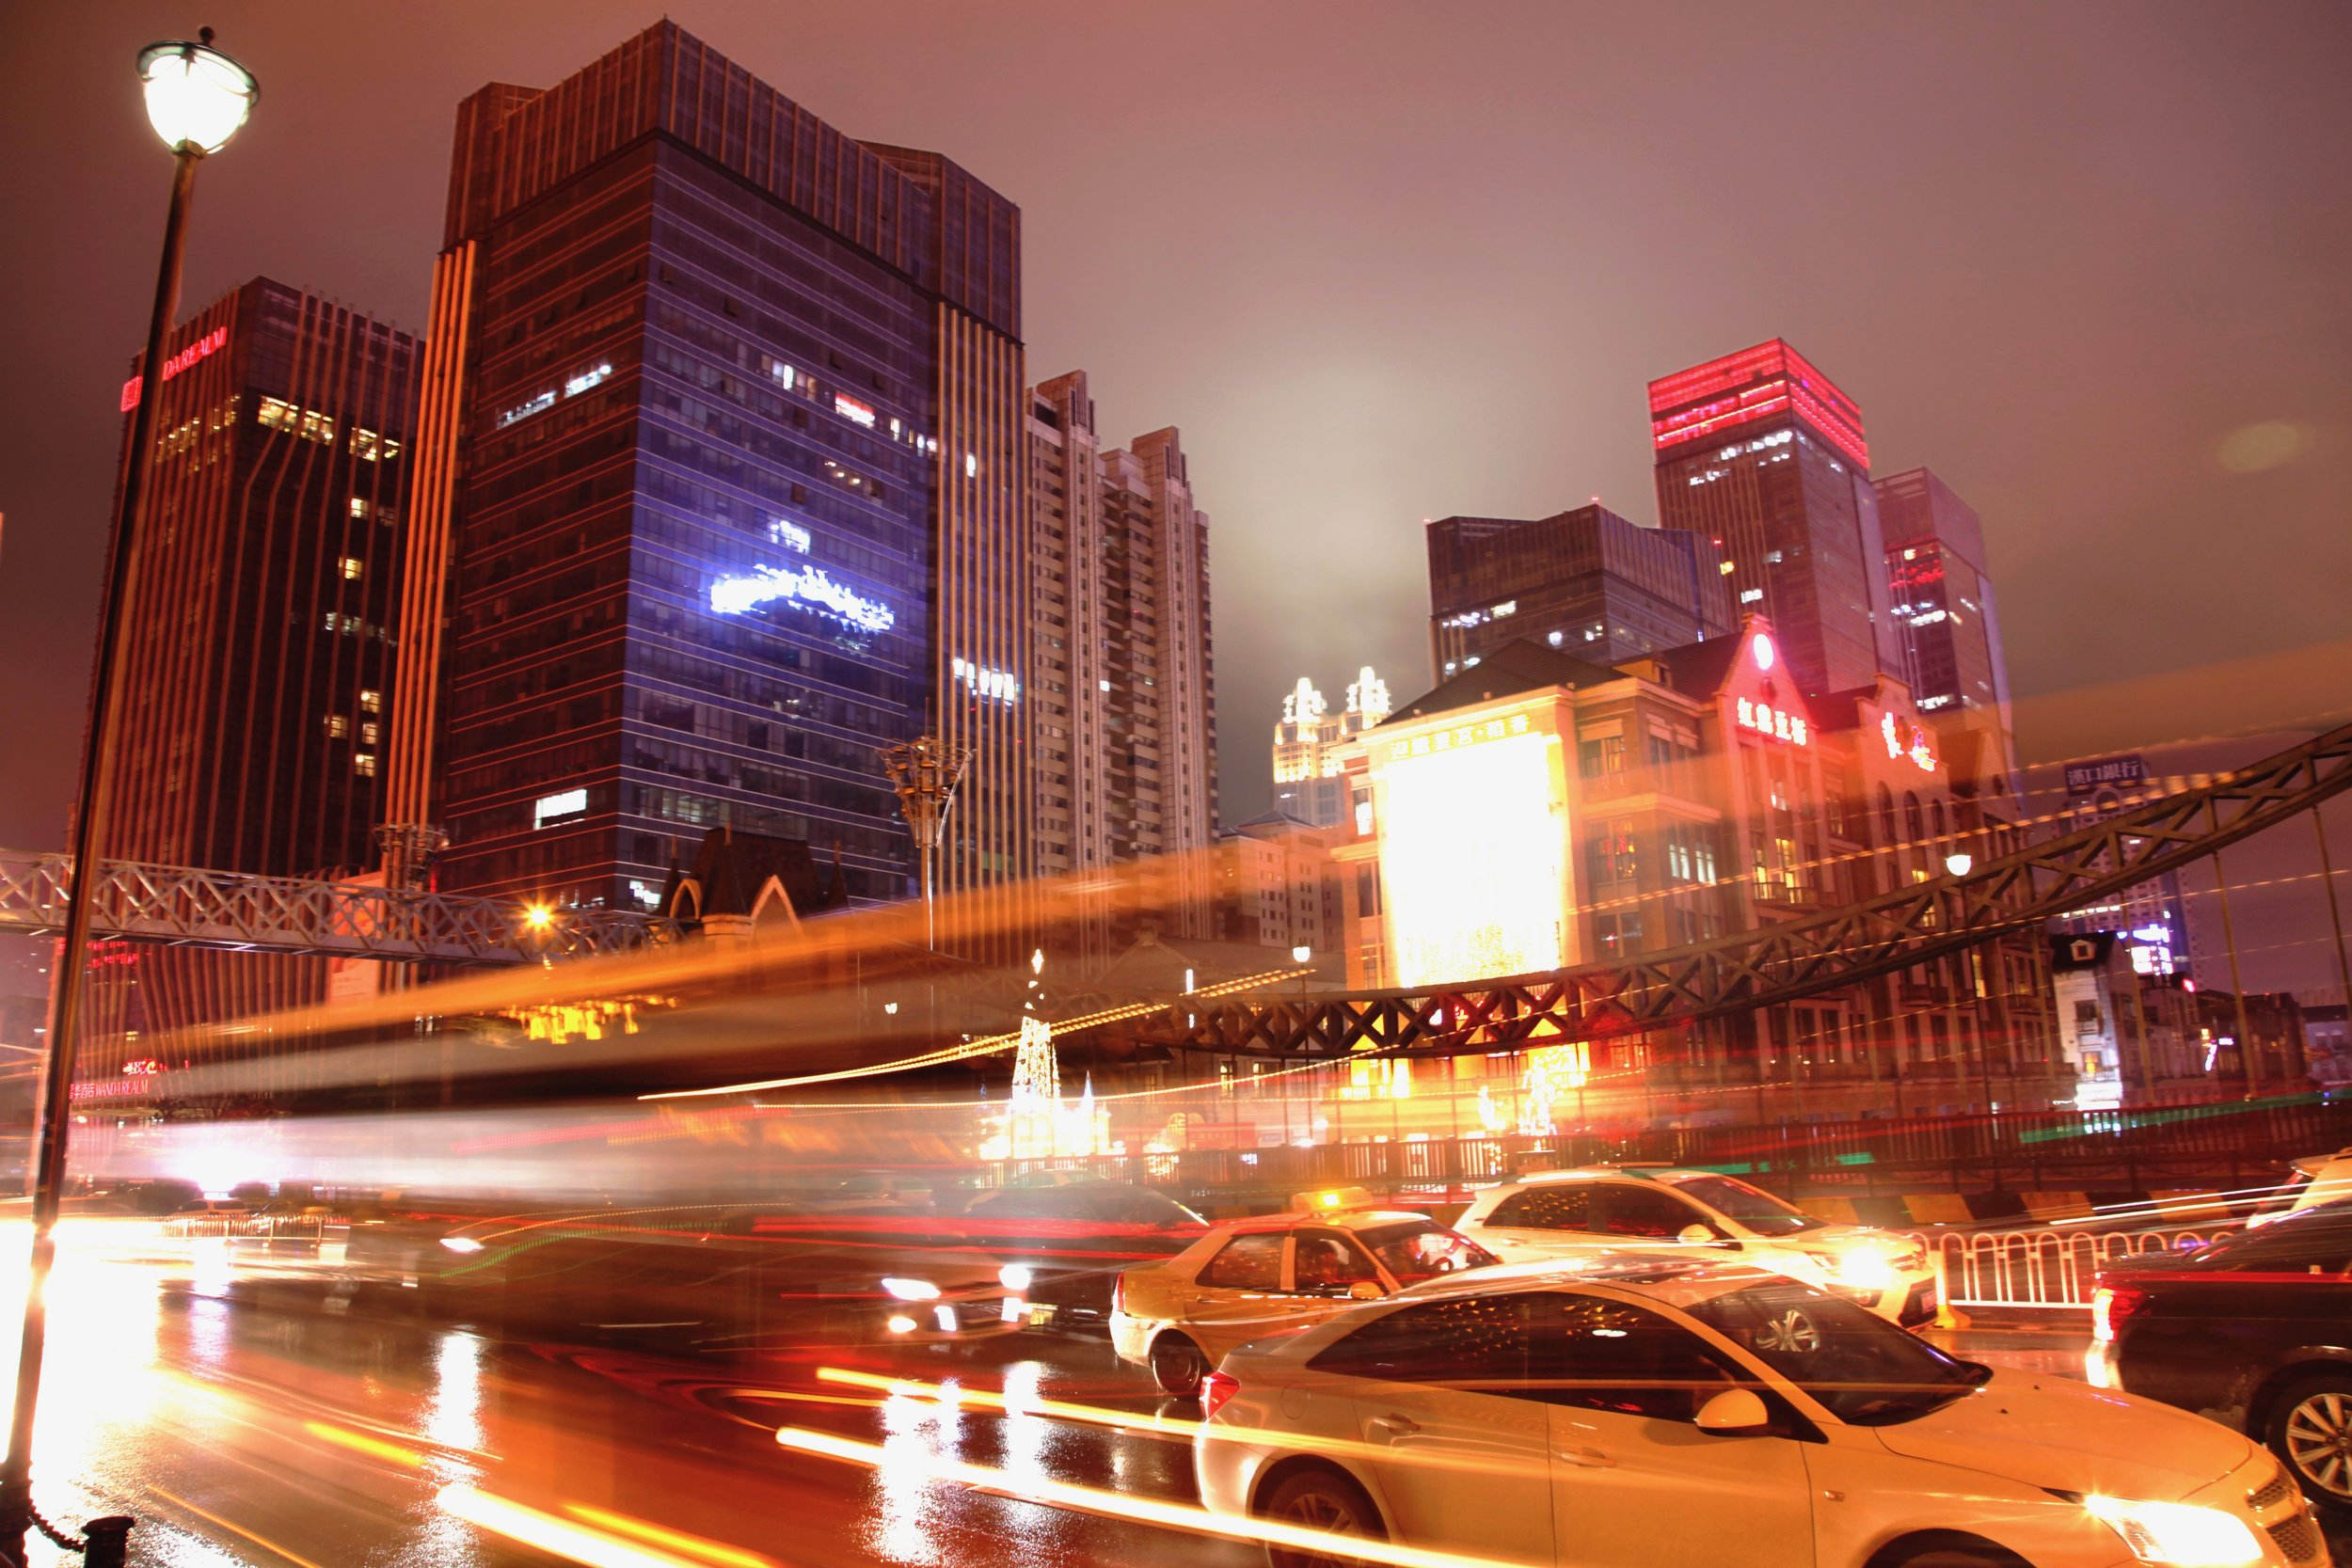 WUHAN - City of